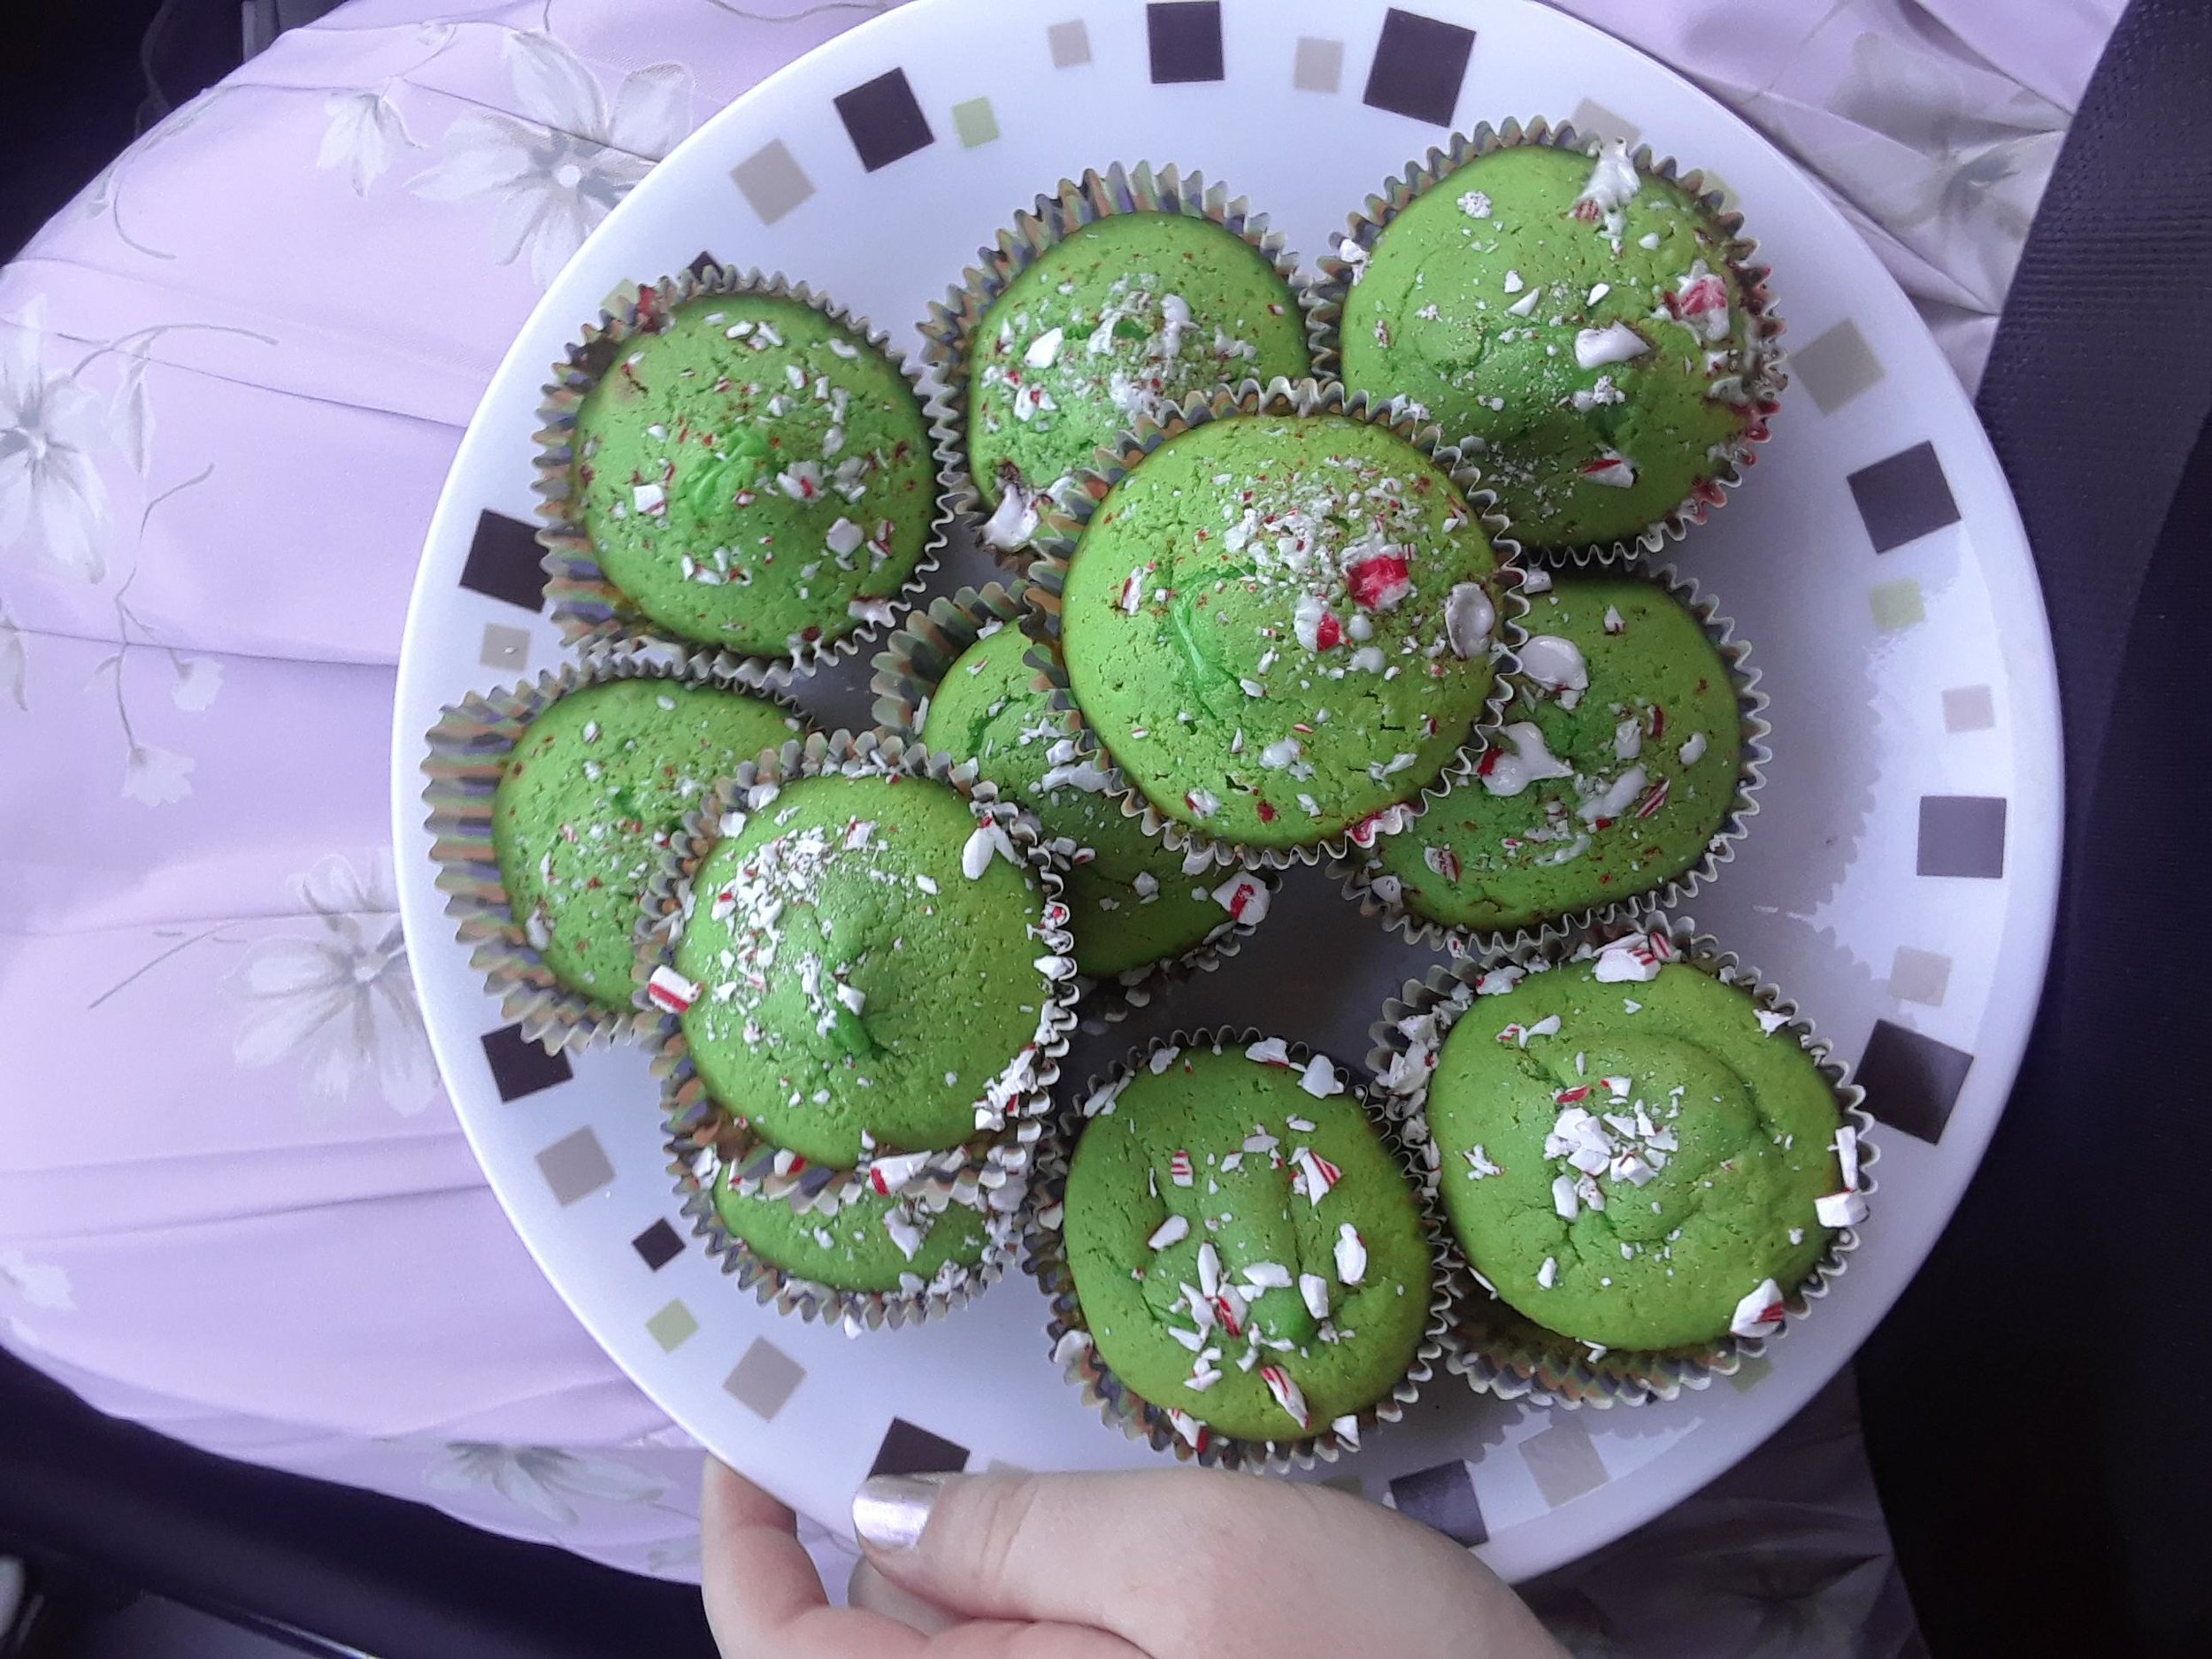 Also 'tis the season for diabetes (ft. The Grinch Cakes I made for our district meeting)